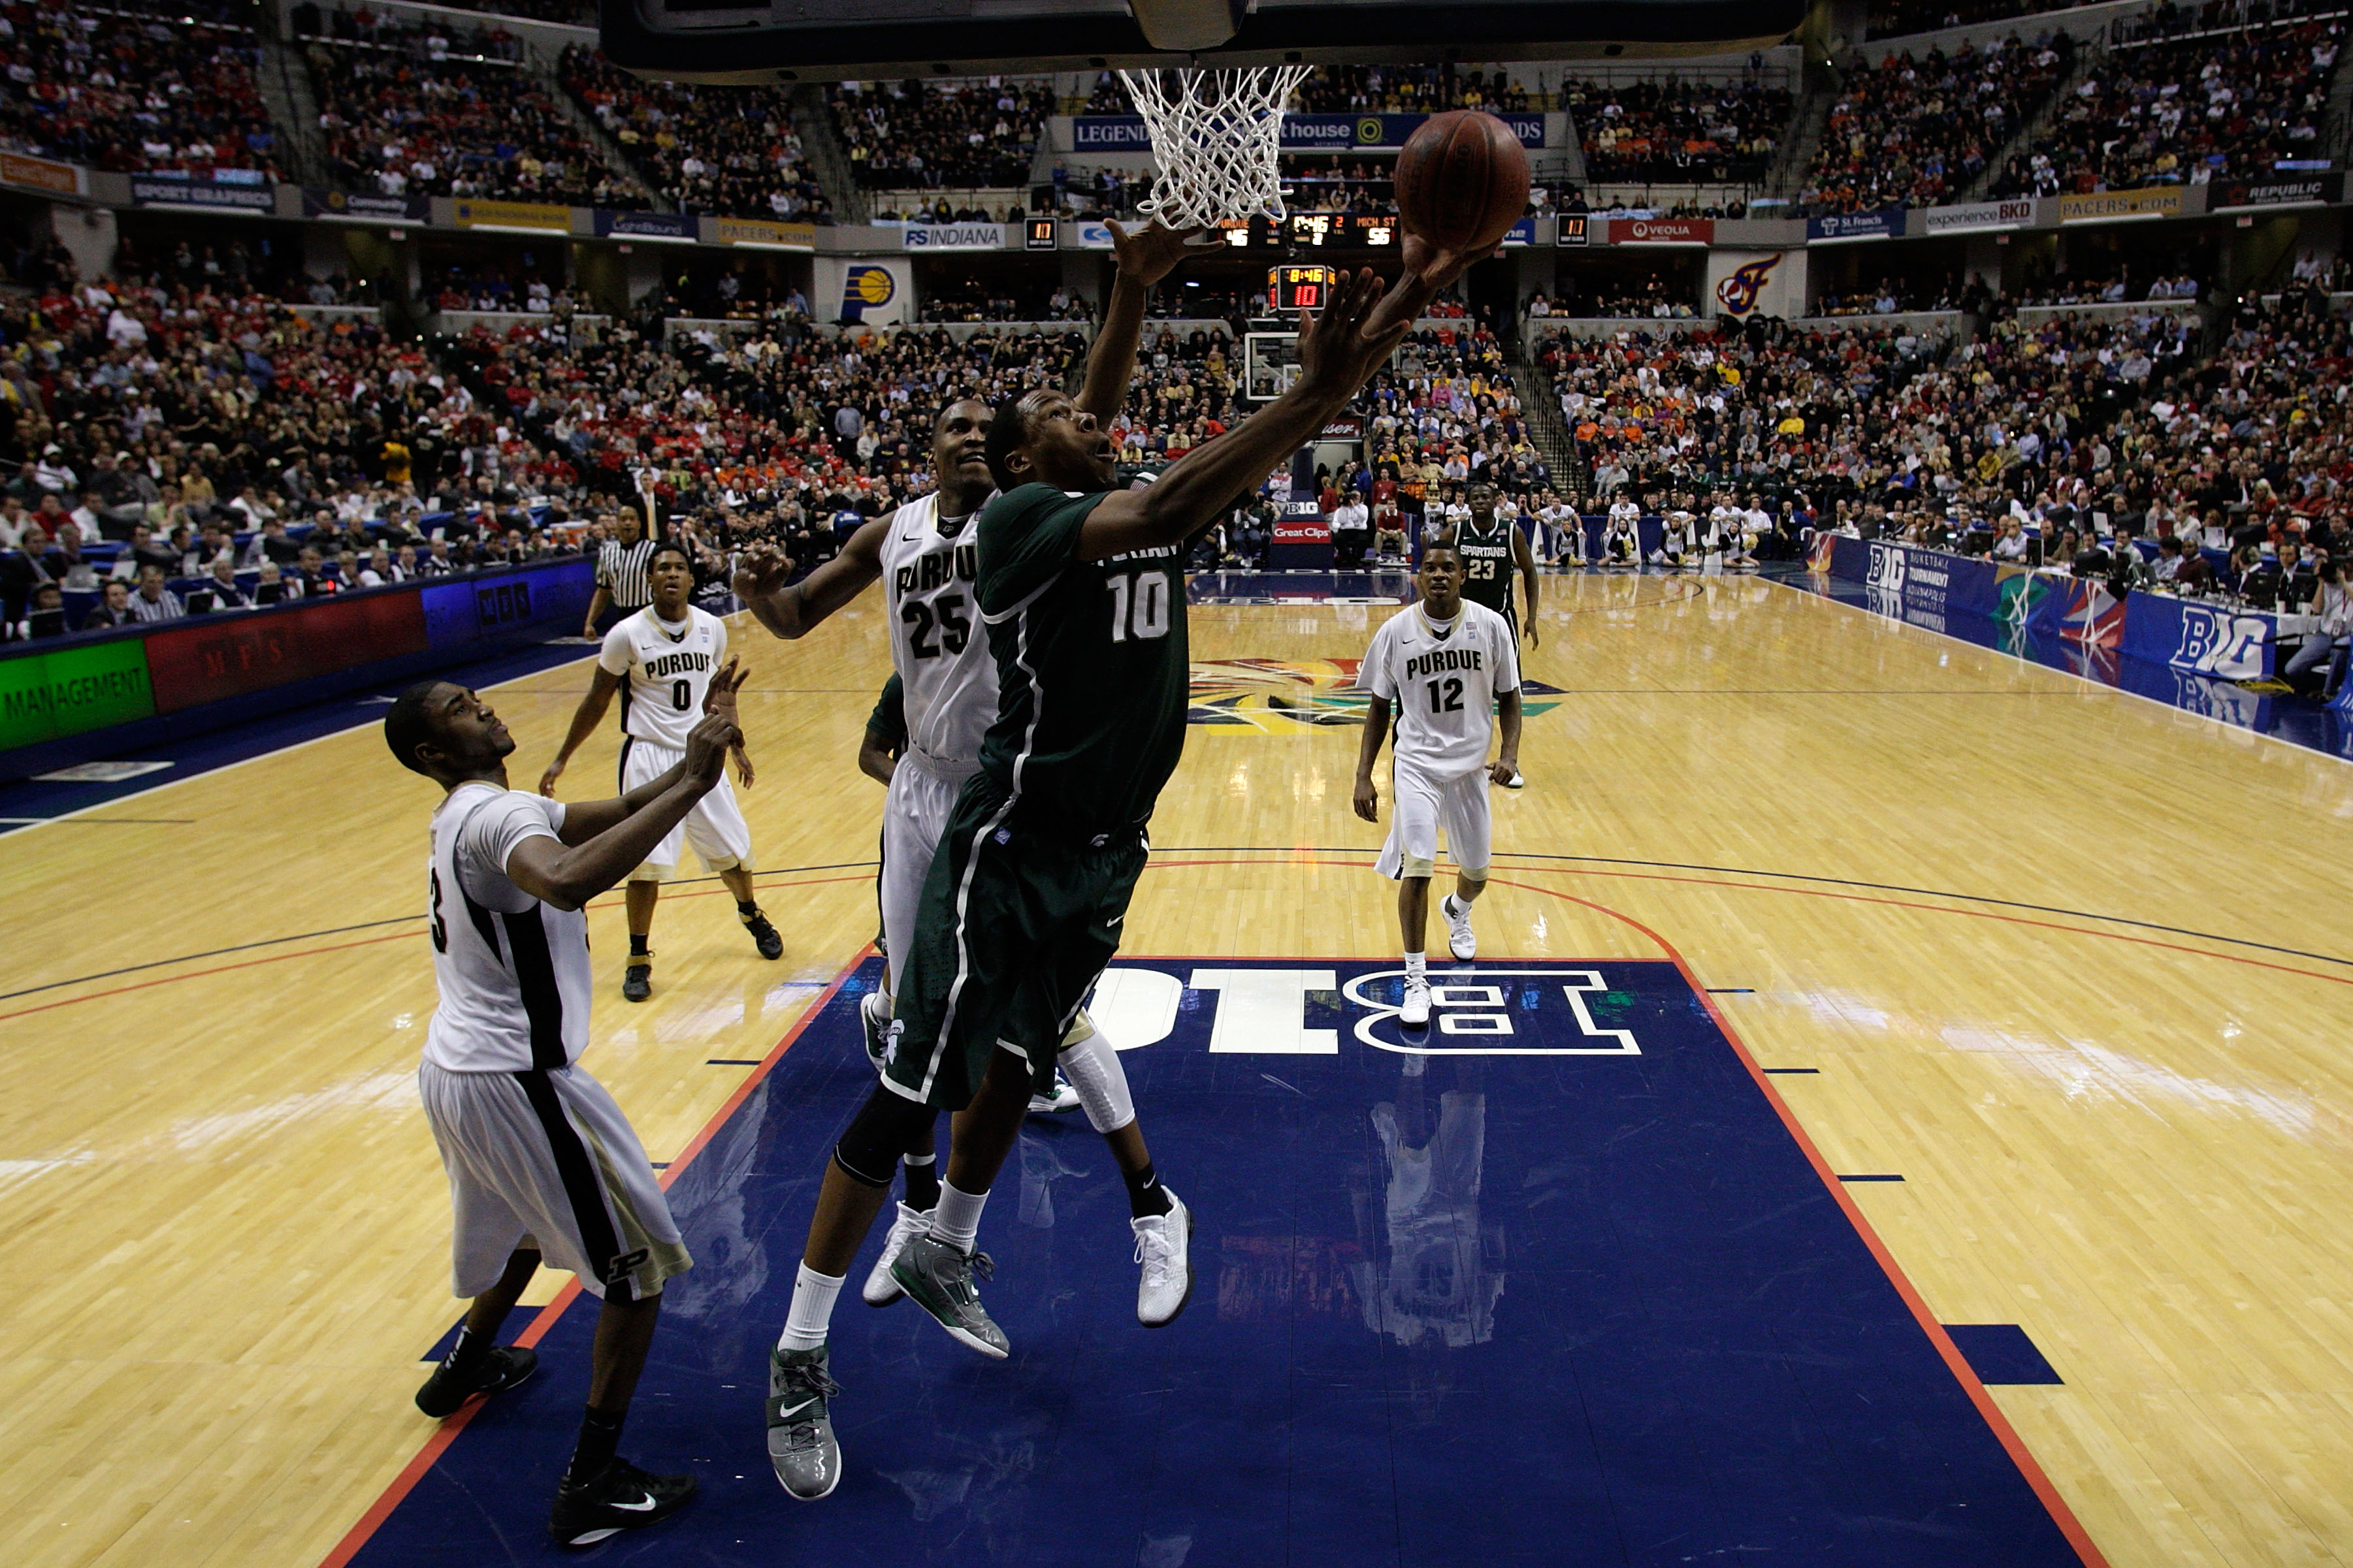 INDIANAPOLIS, IN - MARCH 11:  Delvon Roe #10 of the Michigan State Spartans drives for a shot attempt against JaJuan Johnson #25 of the Purdue Boilermakers during the quarterfinals of the 2011 Big Ten Men's Basketball Tournament at Conseco Fieldhouse on M